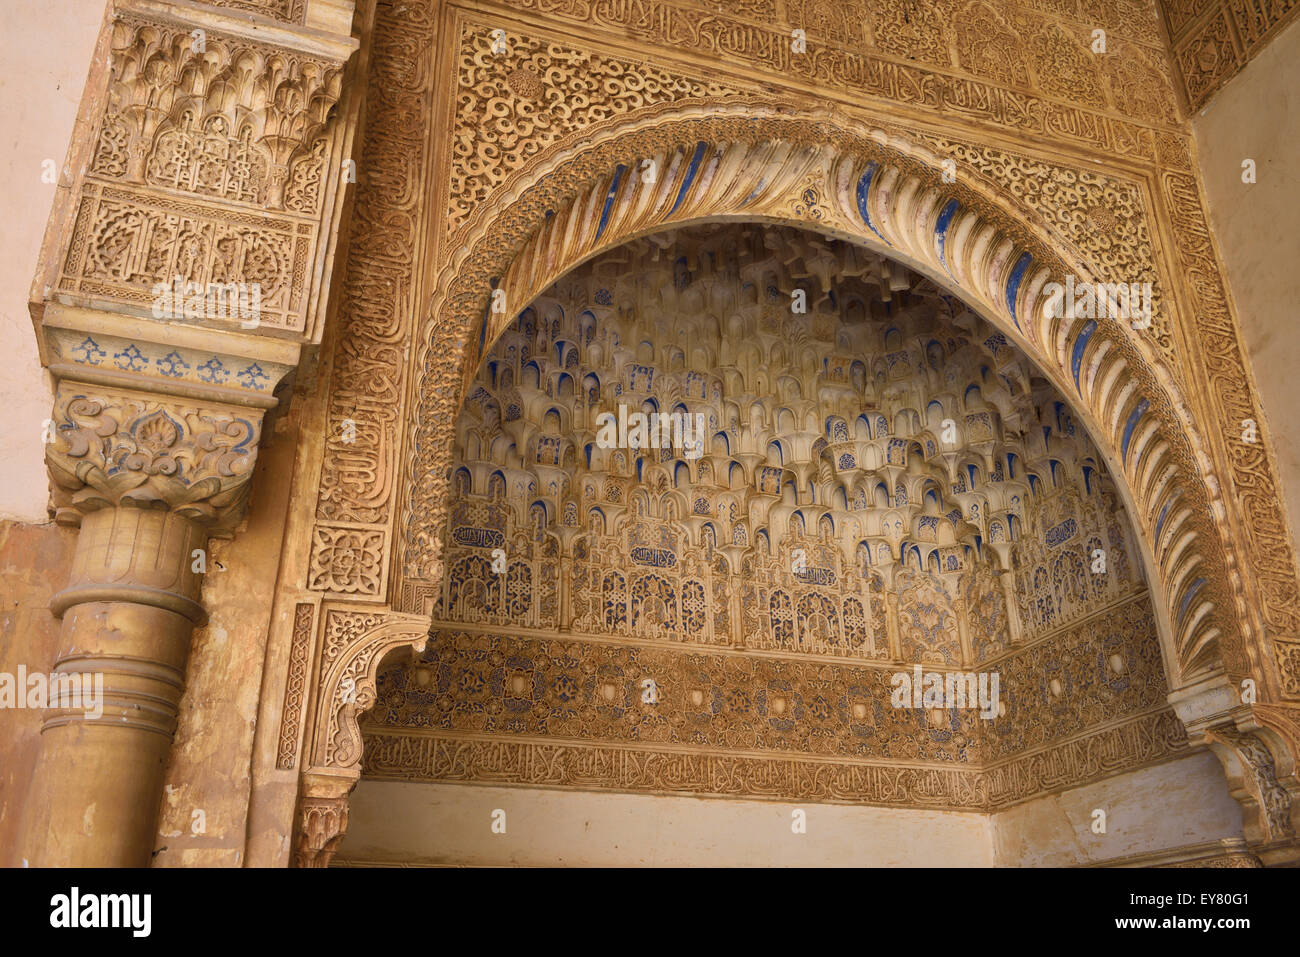 Ornate arched door with arabesque and Mocarabe designs in Comares Palace of Nasrid Alhambra Granada - Stock Image